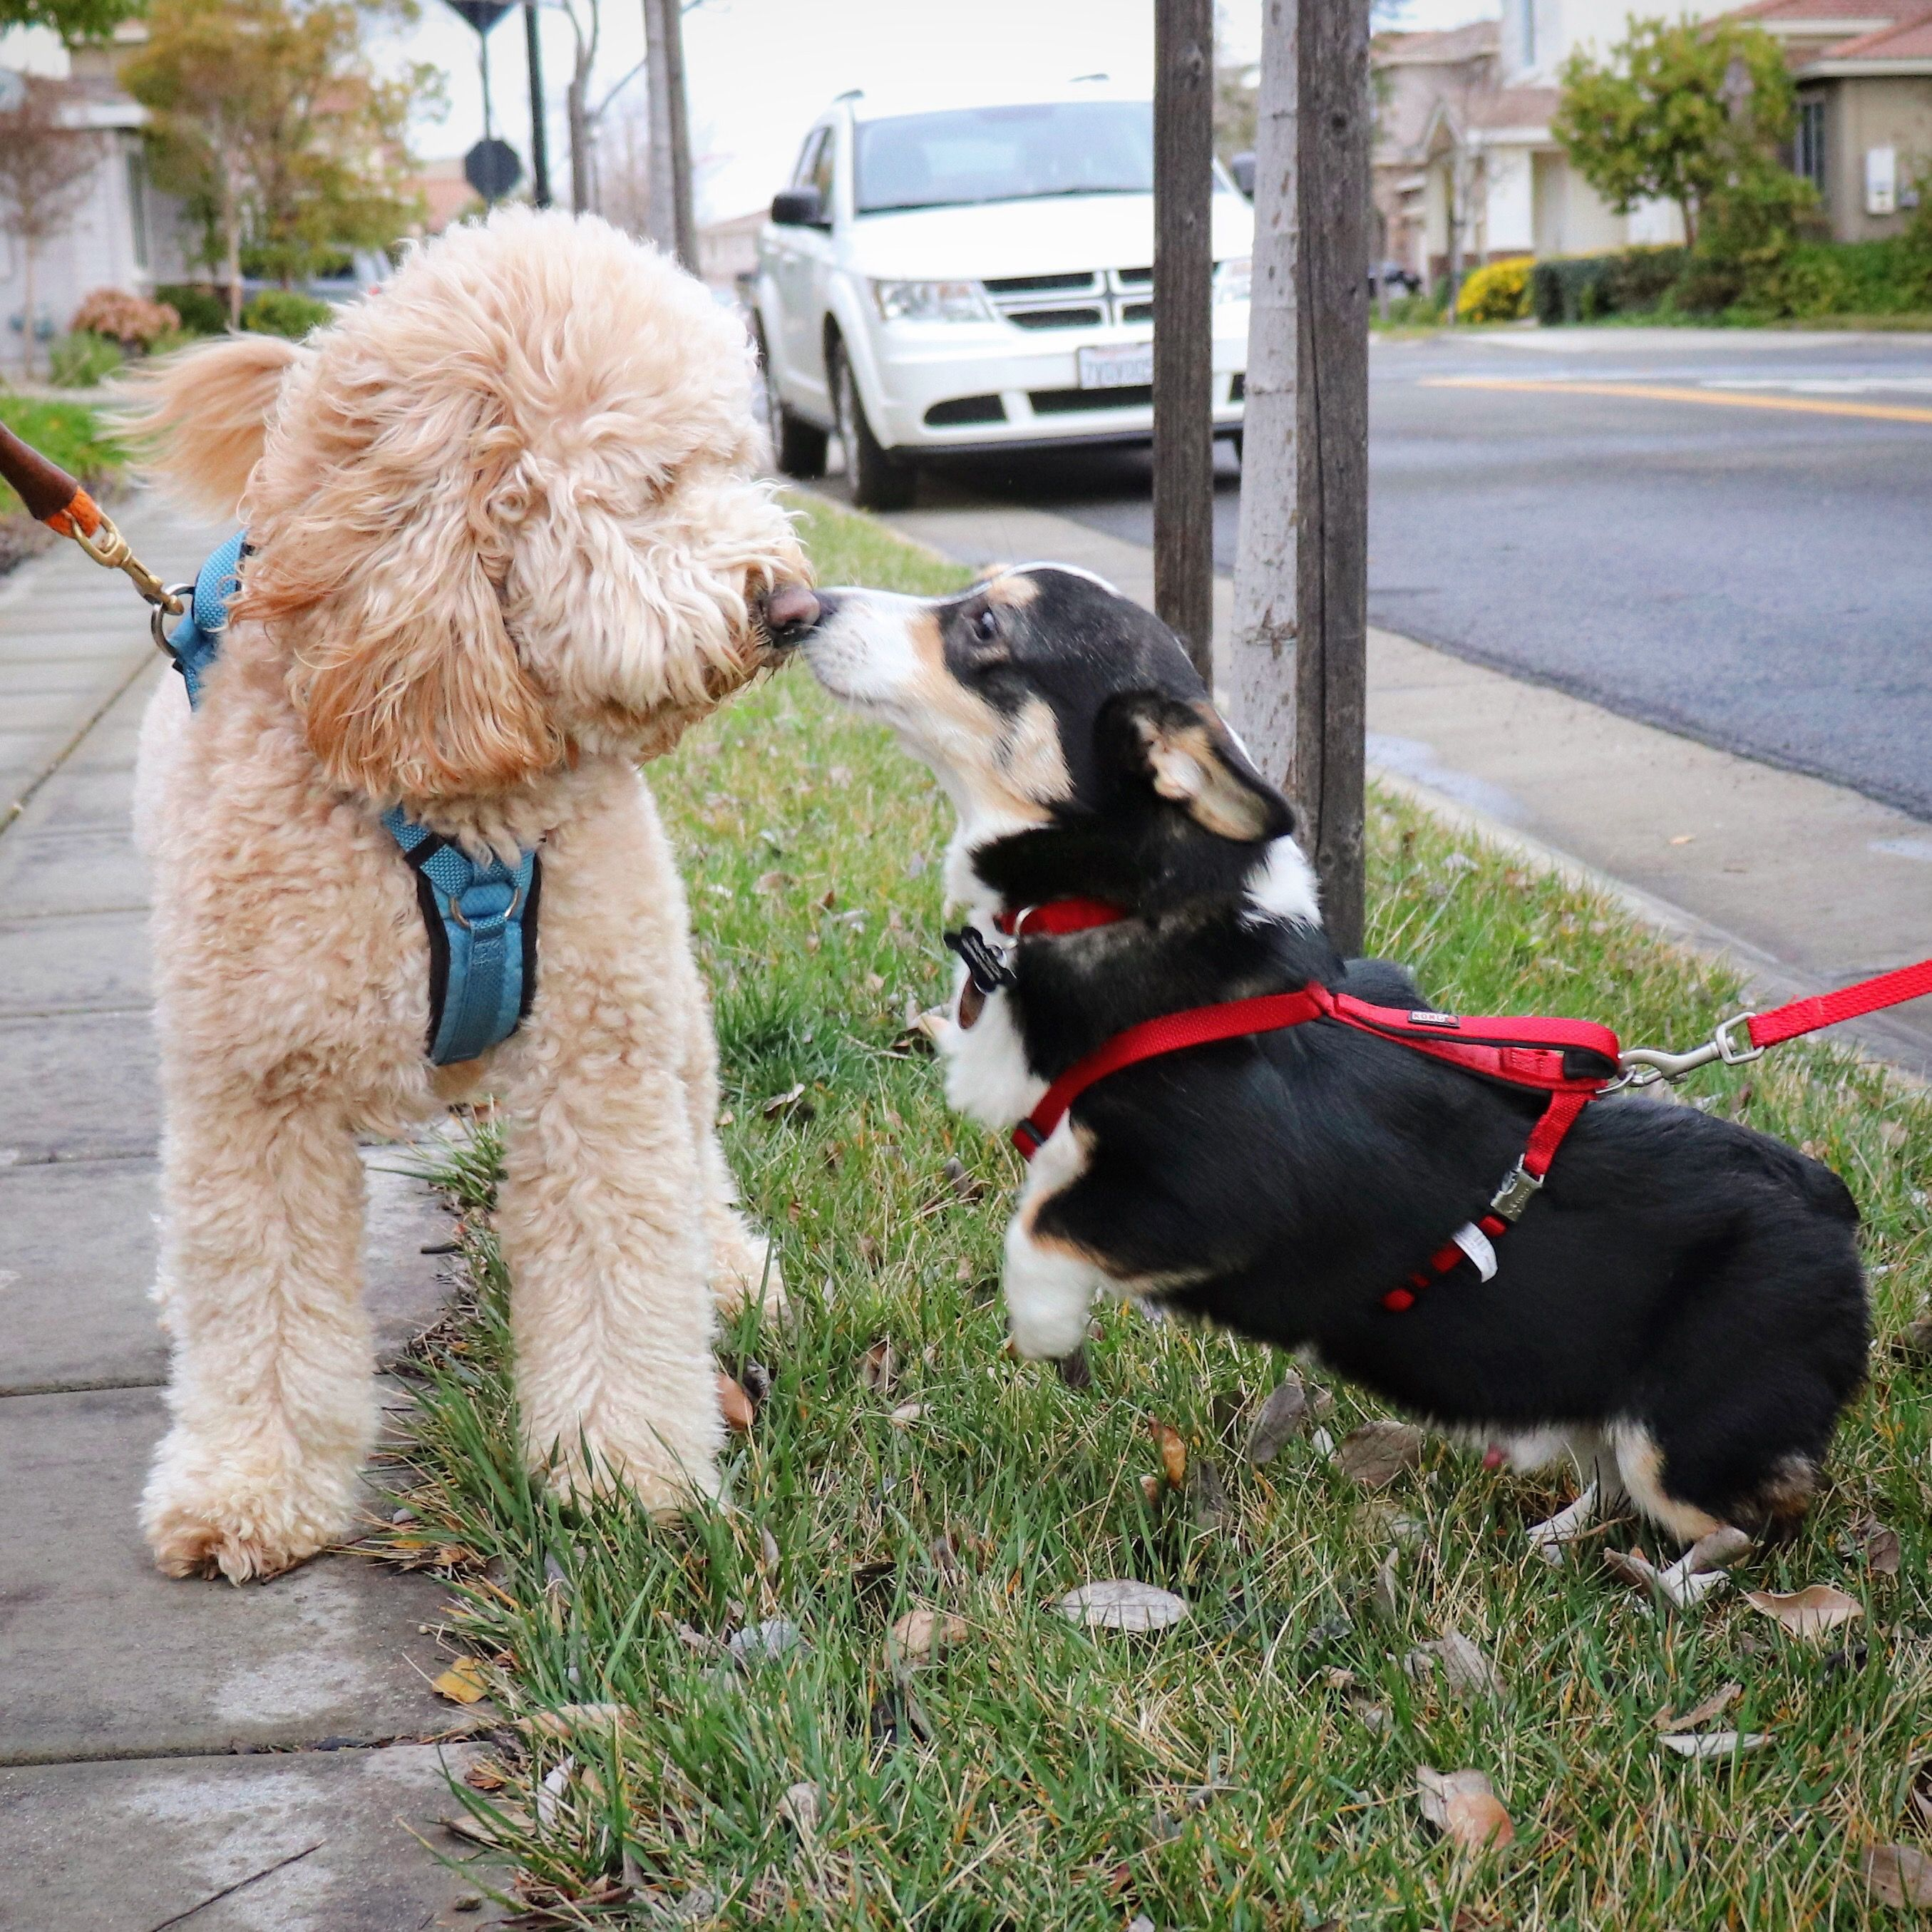 Goldendoodle And Corgi With Images Miniature Dachshunds